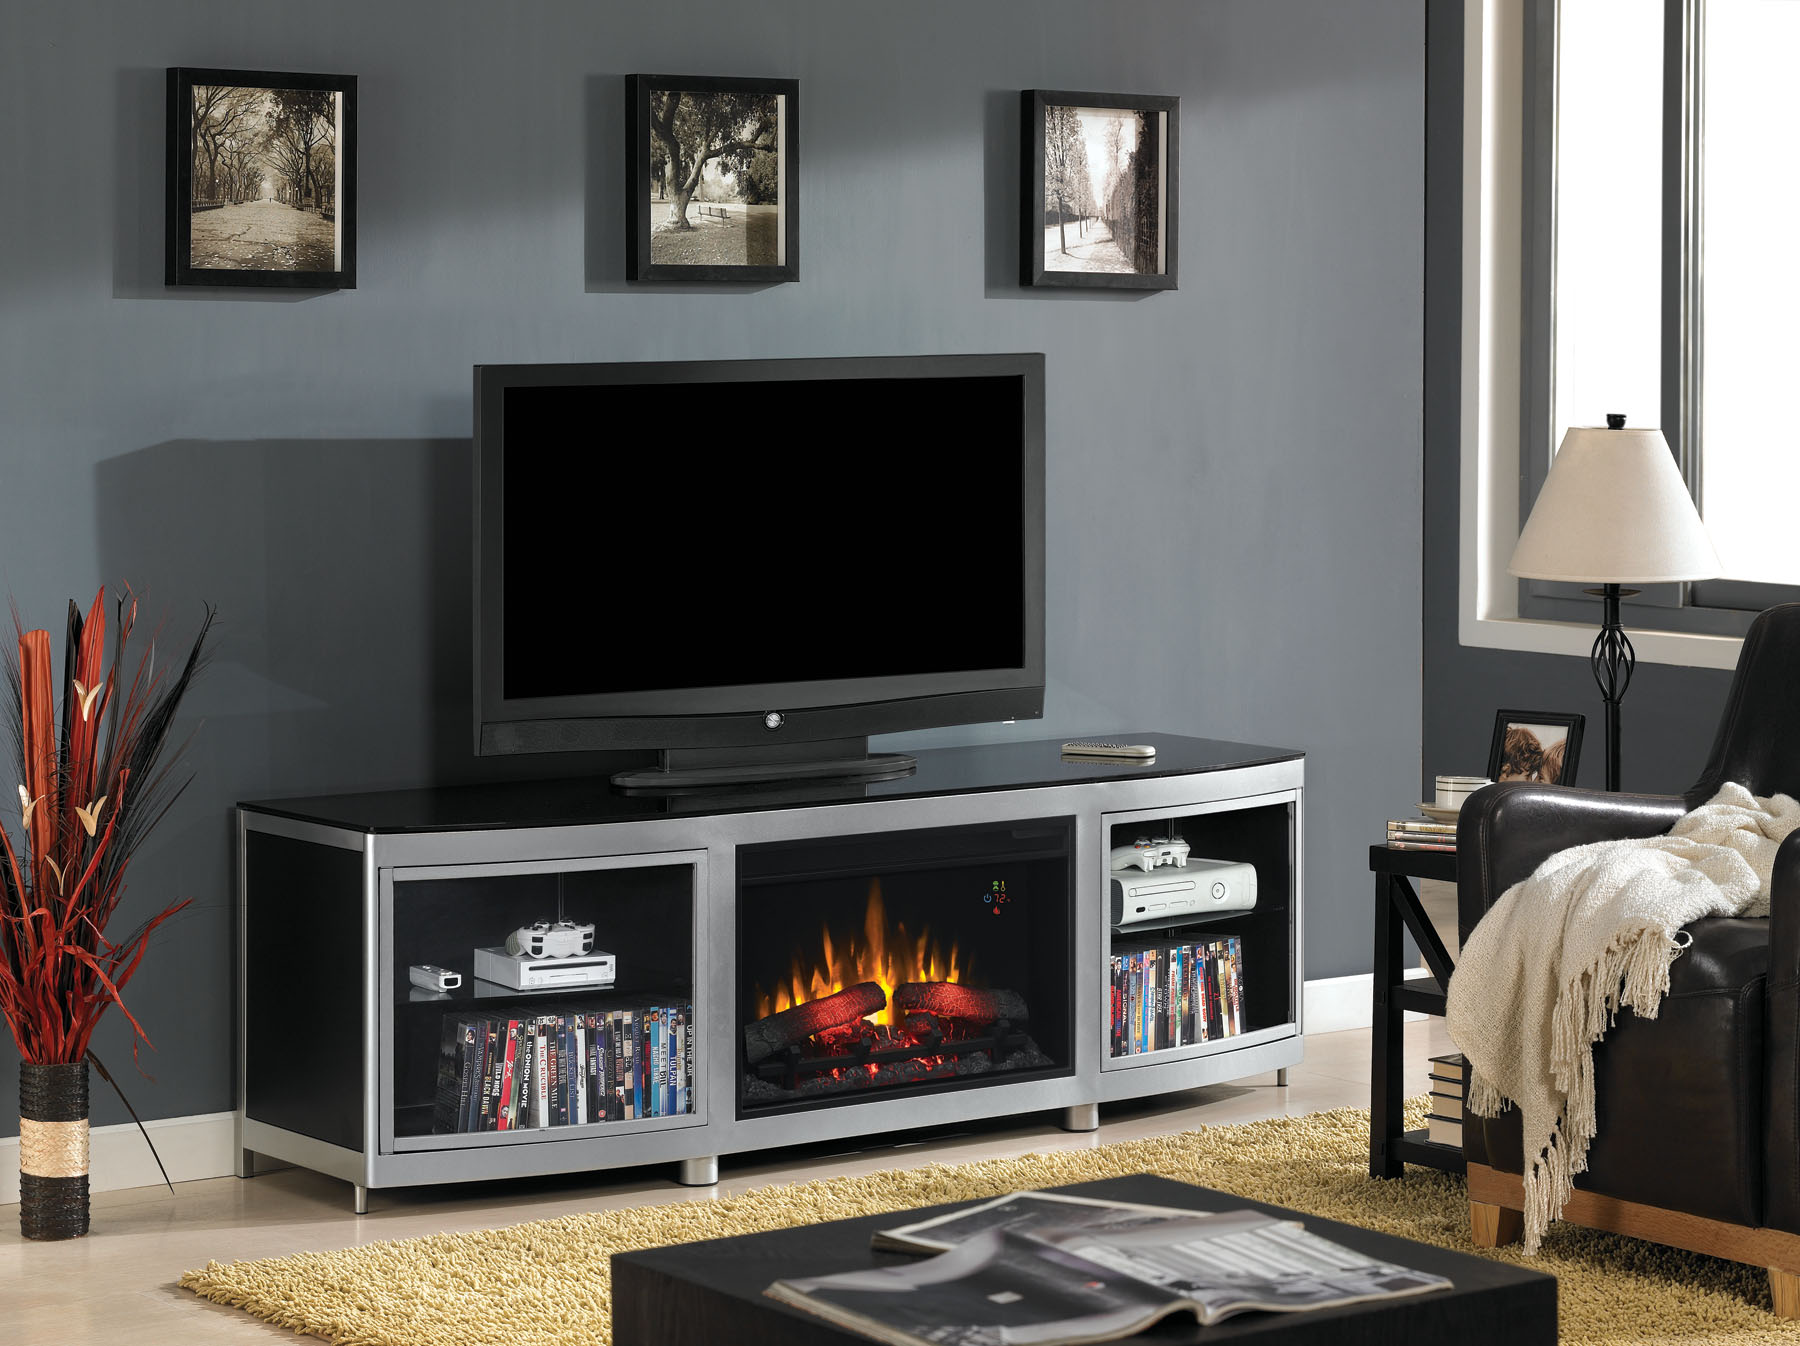 The Gotham Electric Fireplace Media Console in Black provides the modern look many are looking for in apartments